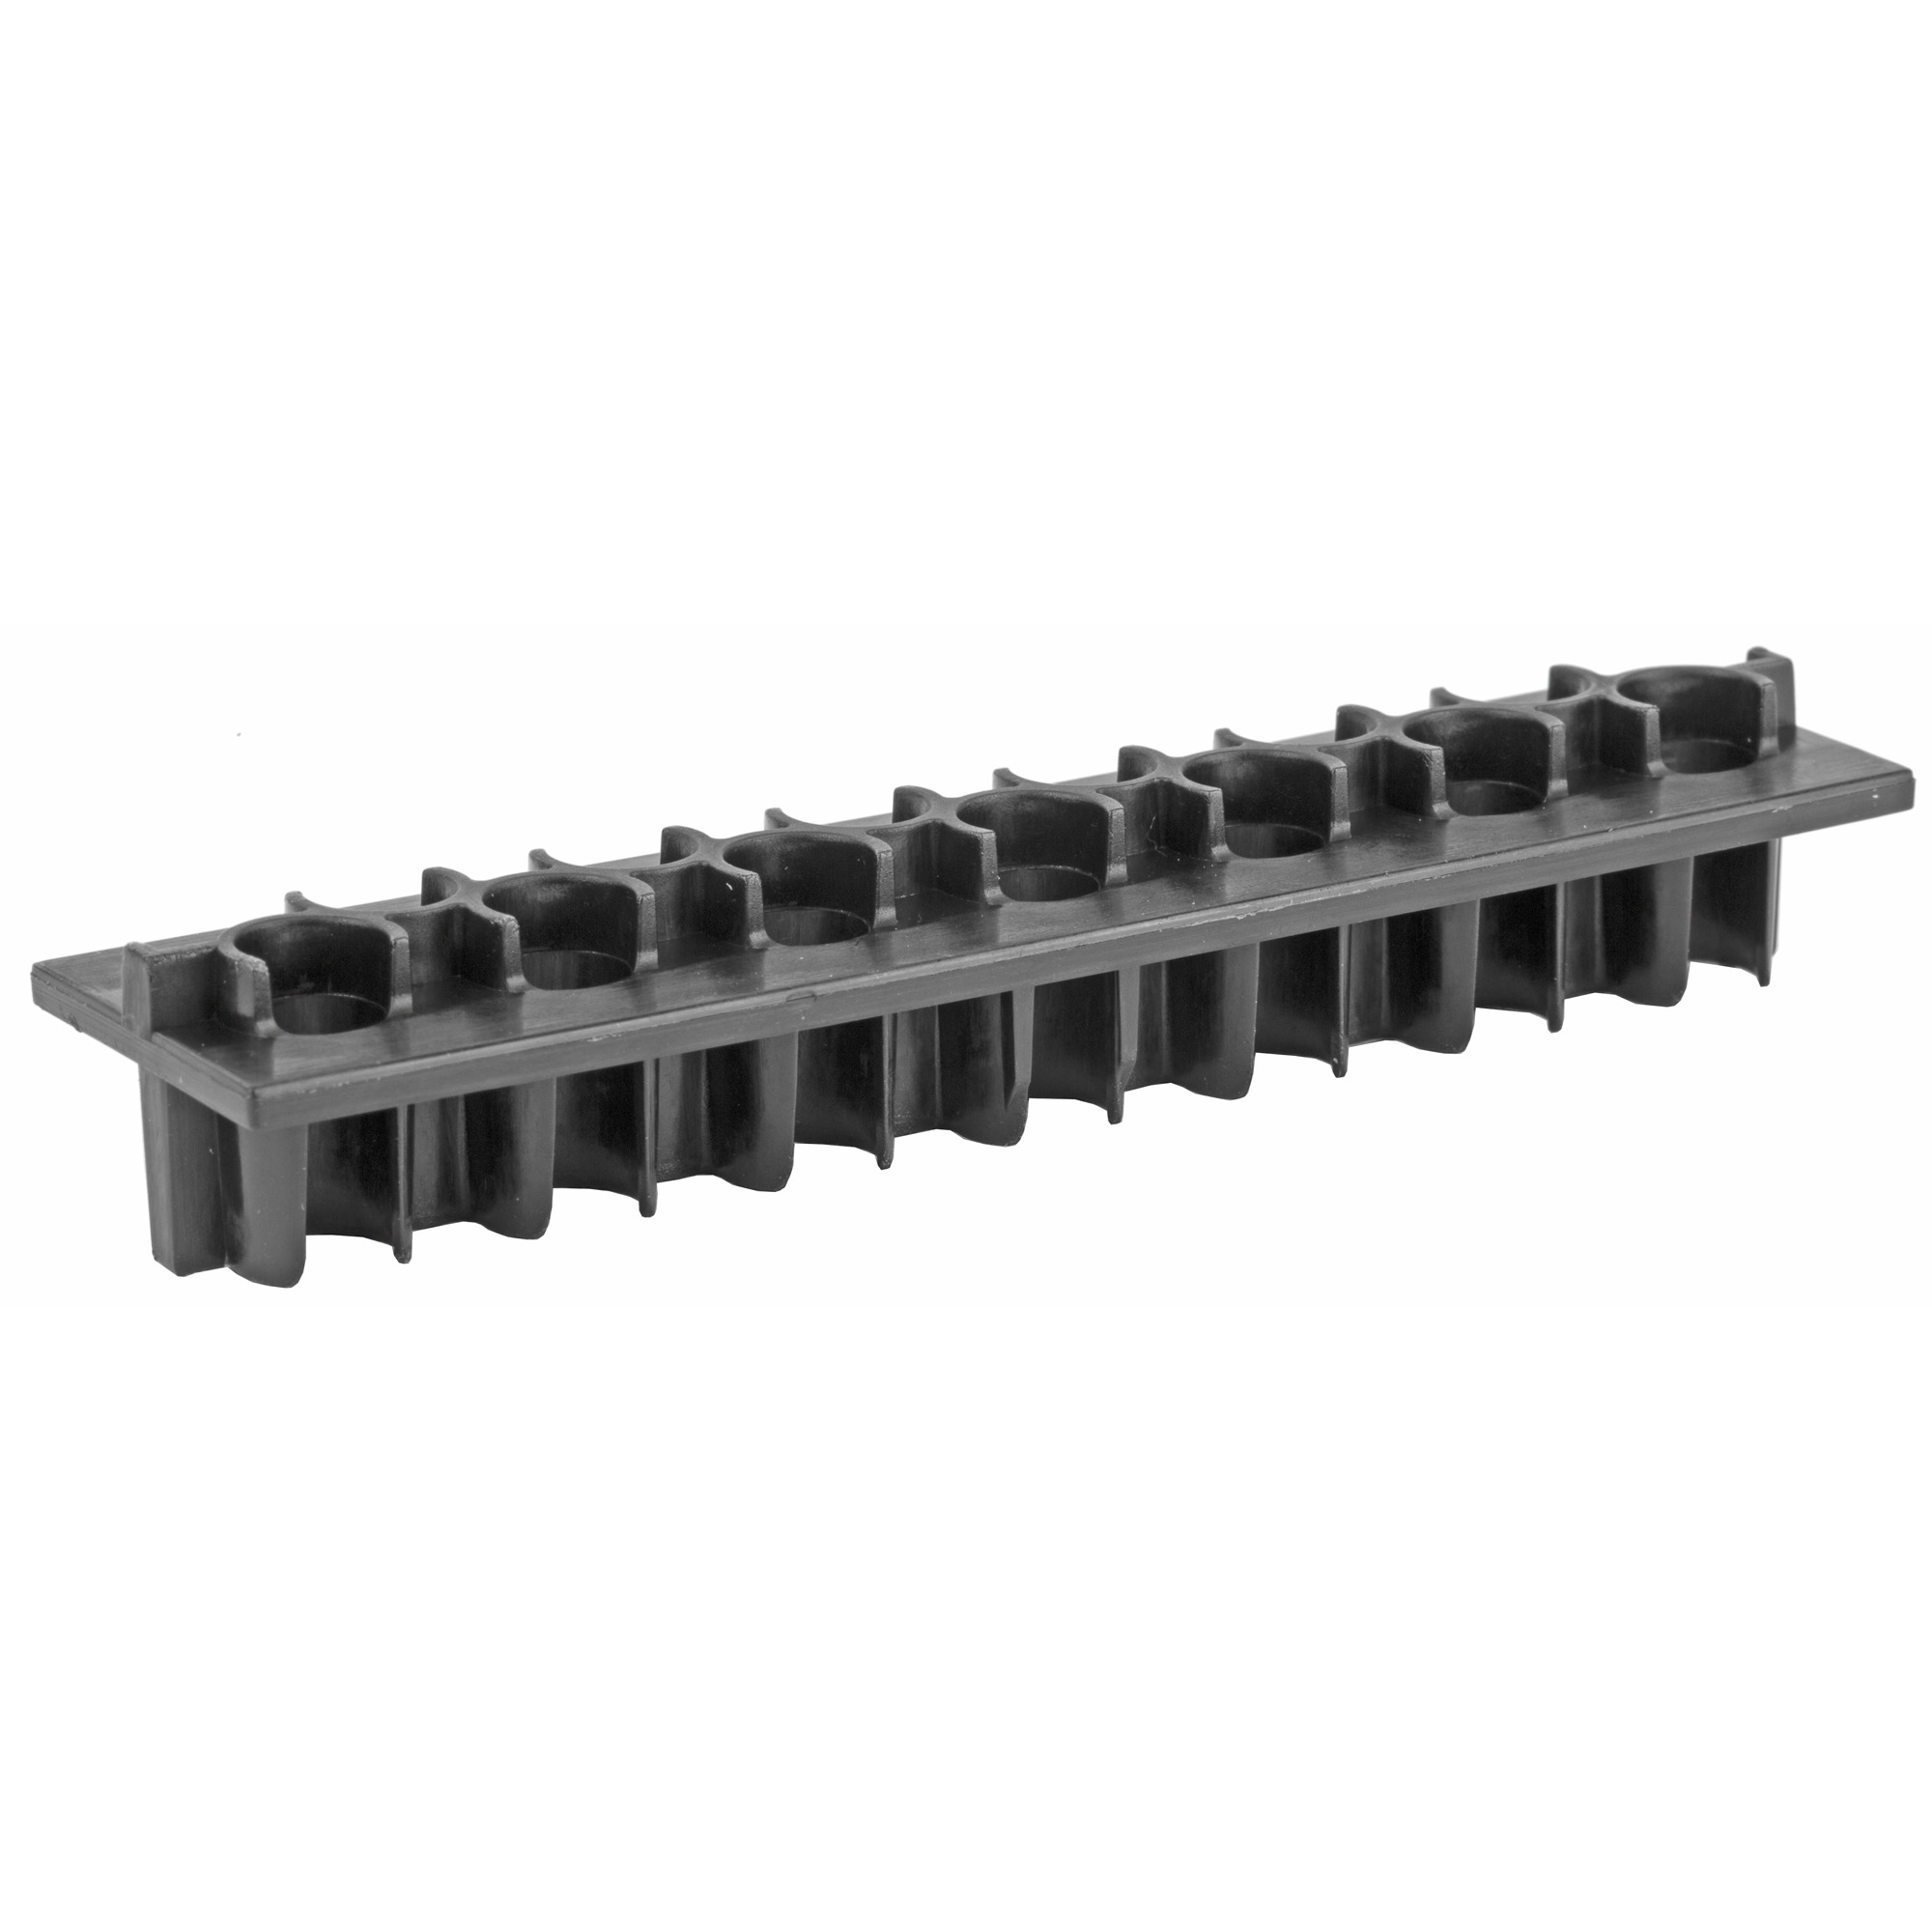 The TPS Arms 22LR/22Mag shell insert holder is designed to fit the stock of the M6 takedown rifle. Holds .22 long rifle and .22 magnum cartridges.